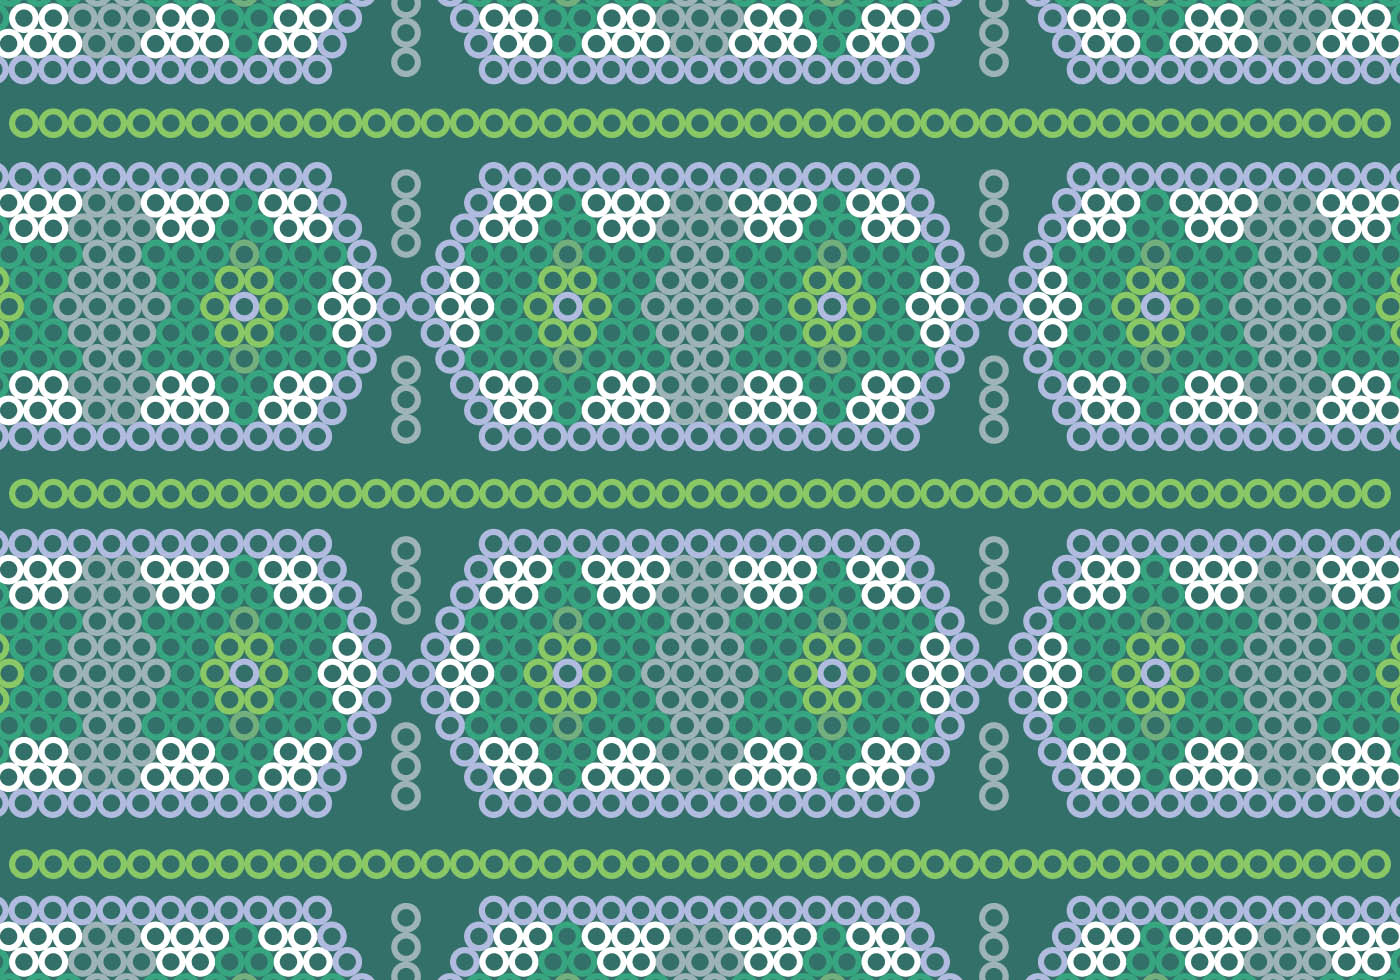 Cute Tribal Patterns Wallpaper Mexican Pattern Download Free Vector Art Stock Graphics